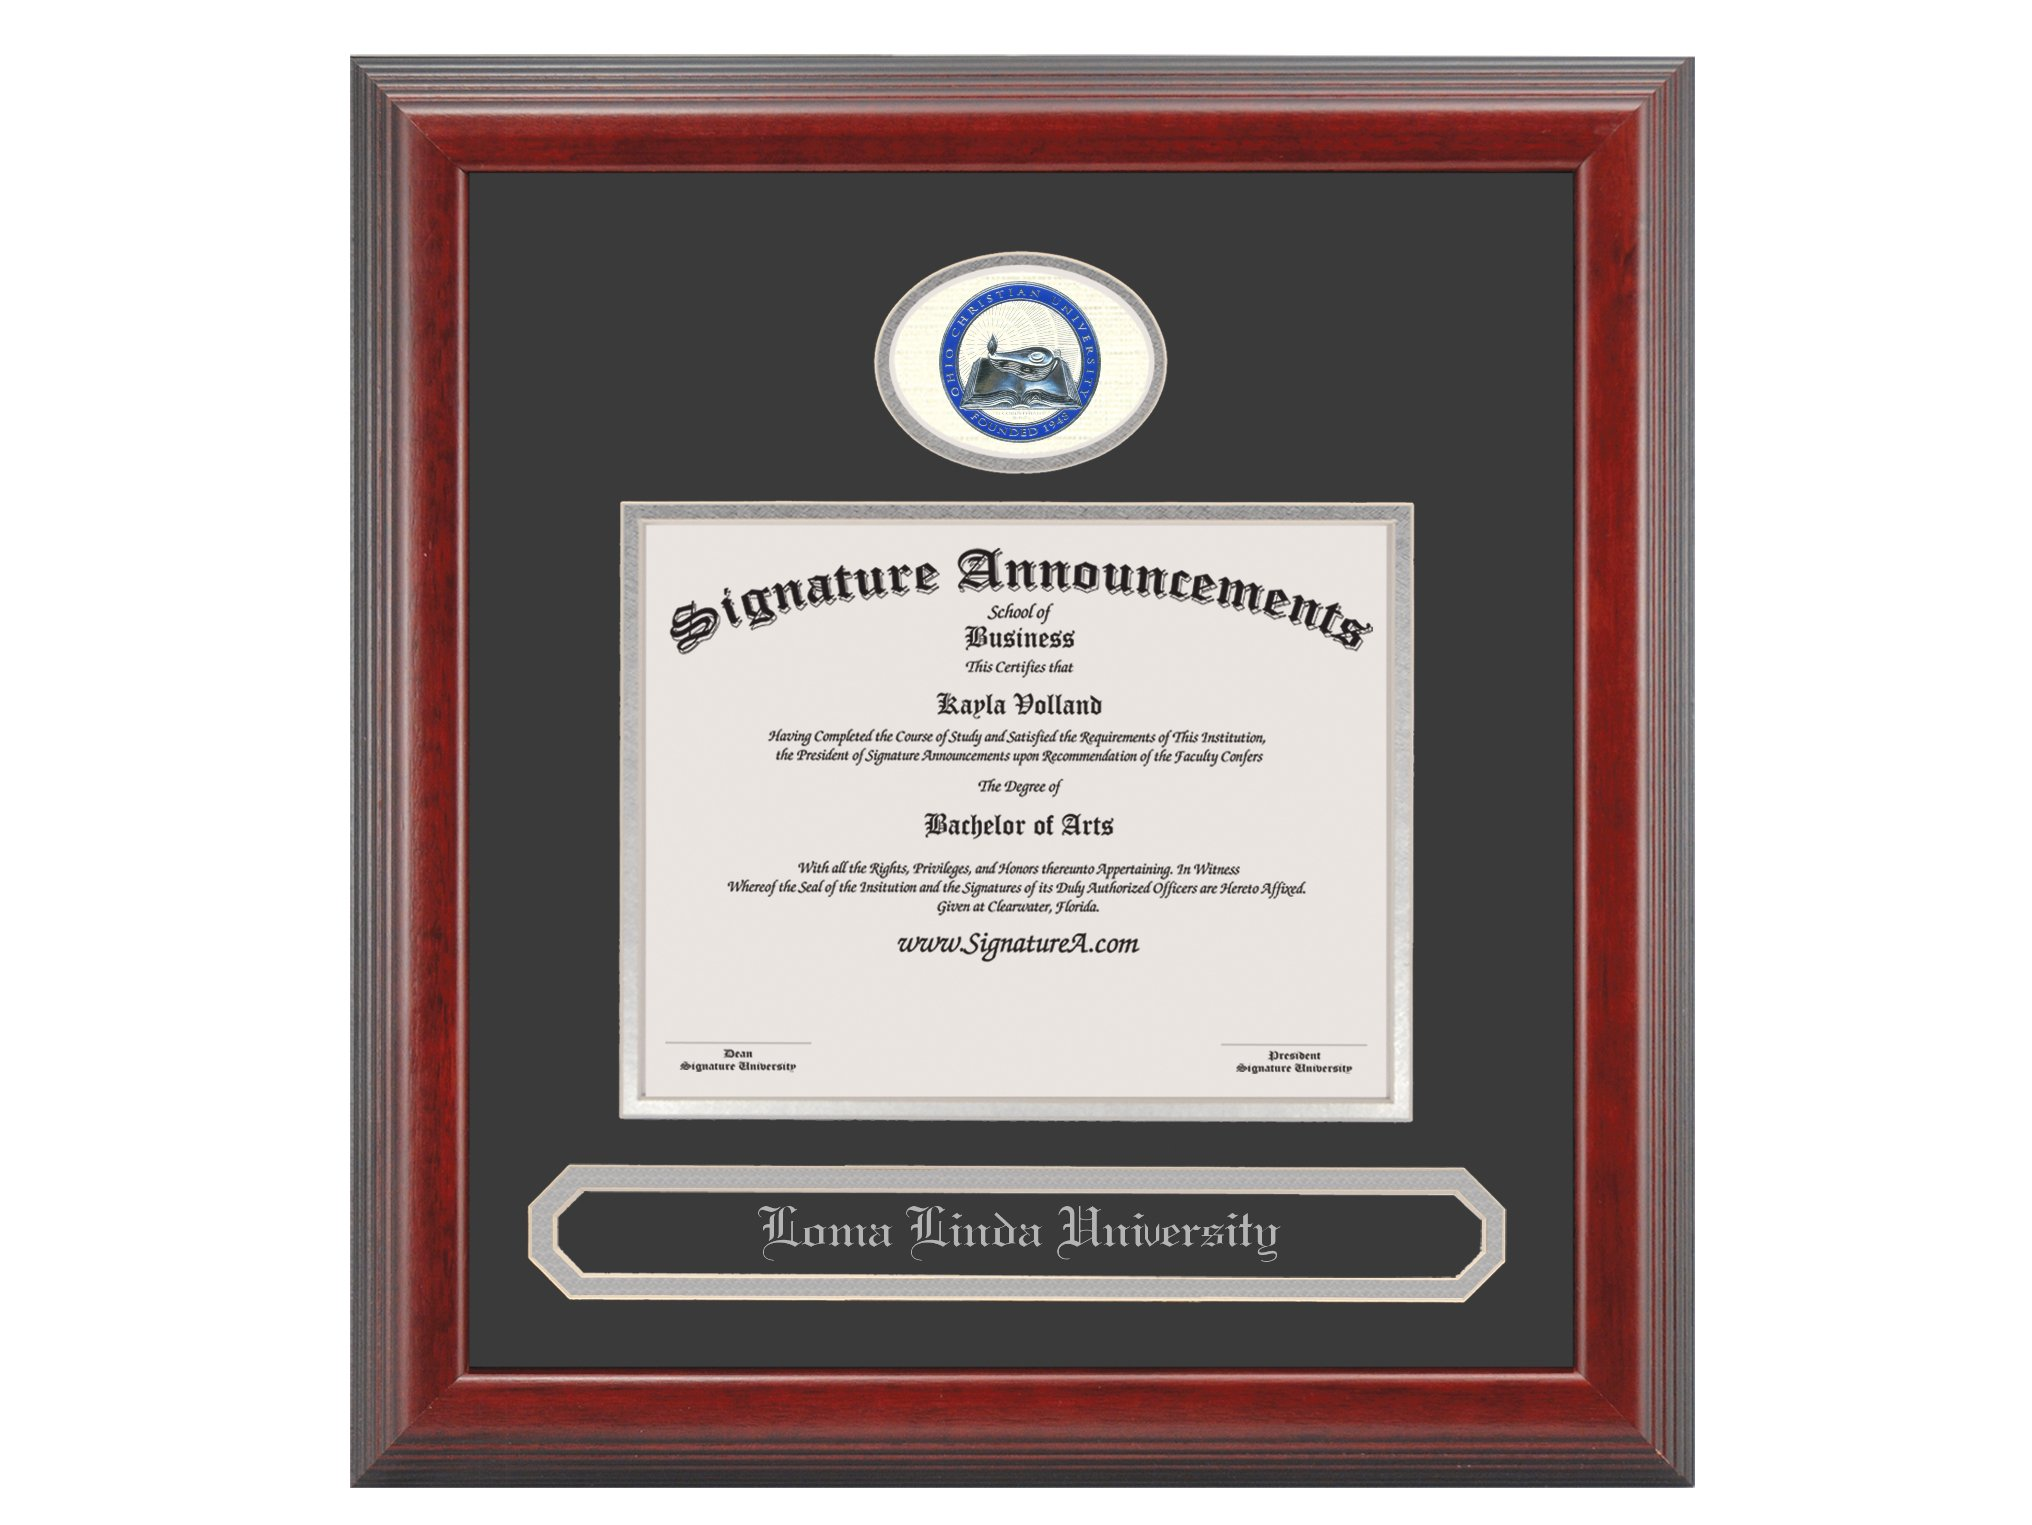 Signature Announcements Ohio-Christian-University Undergraduate, Graduate/Professional/Doctor Sculpted Foil Seal & Name Diploma Frame, 16'' x 16'', Cherry